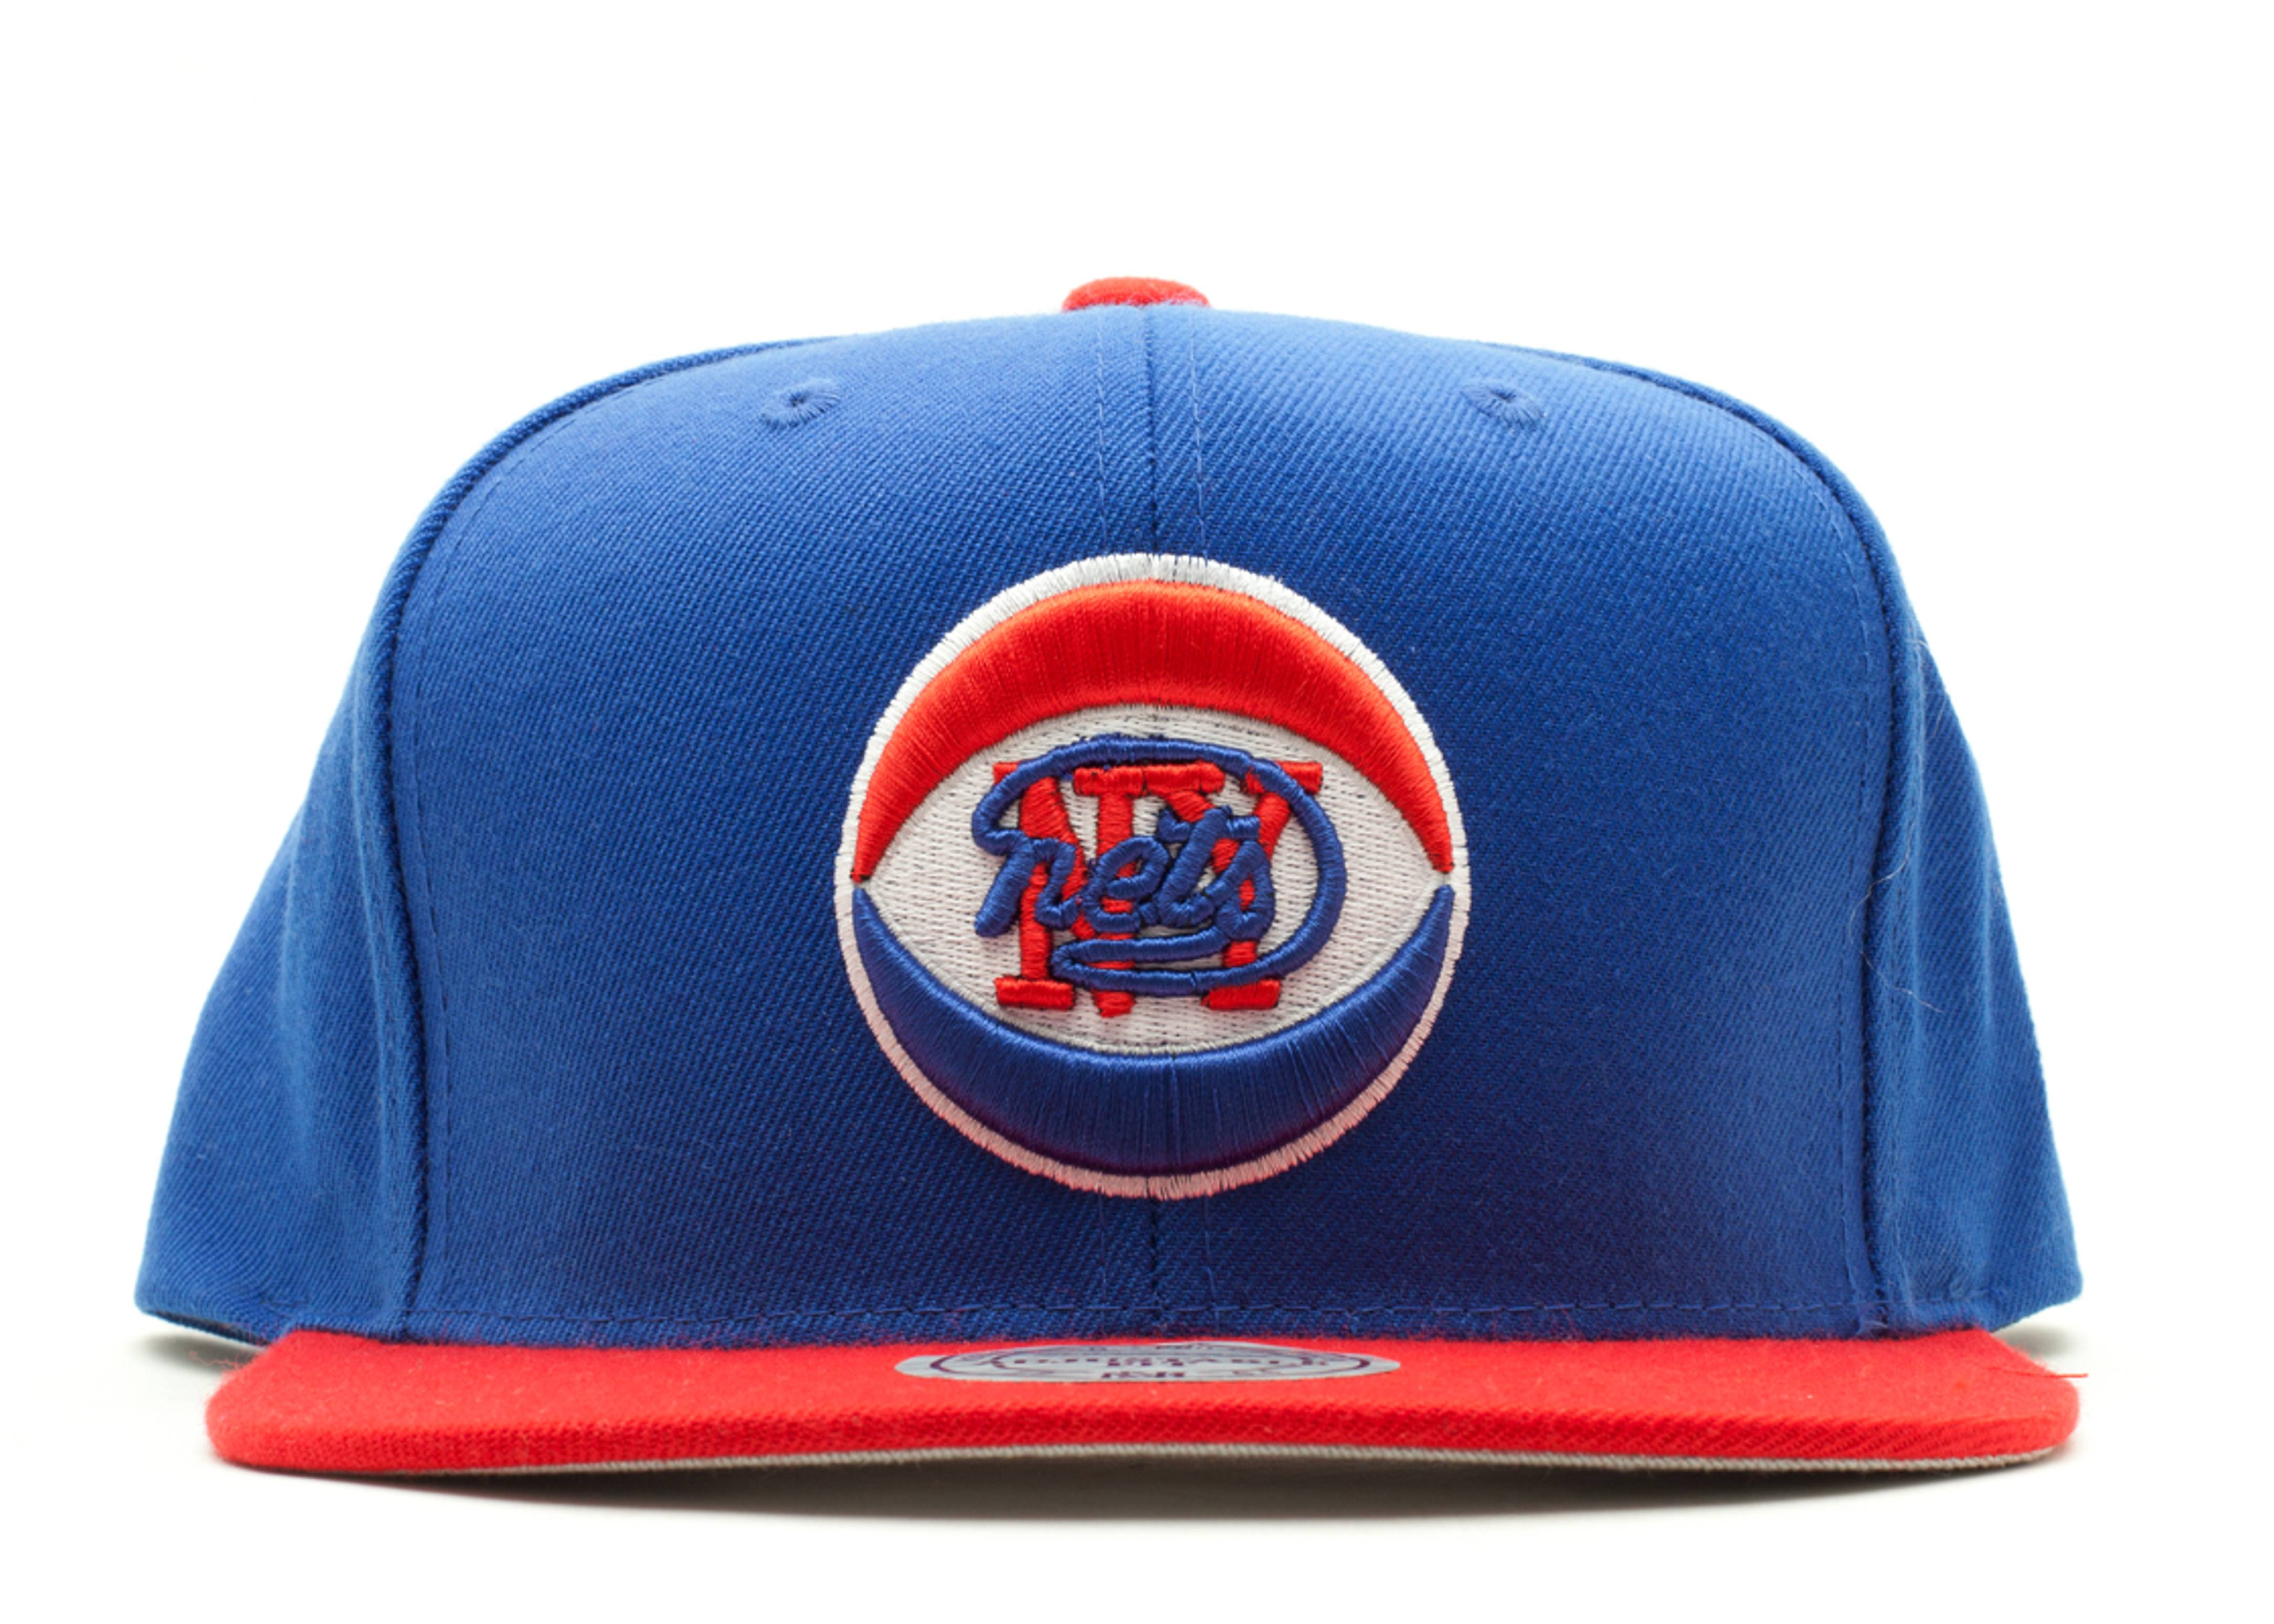 outlet store 845ae 10adc New Jersey Nets Snap-back - Mitchell & Ness - nc99mtc5nnets ...